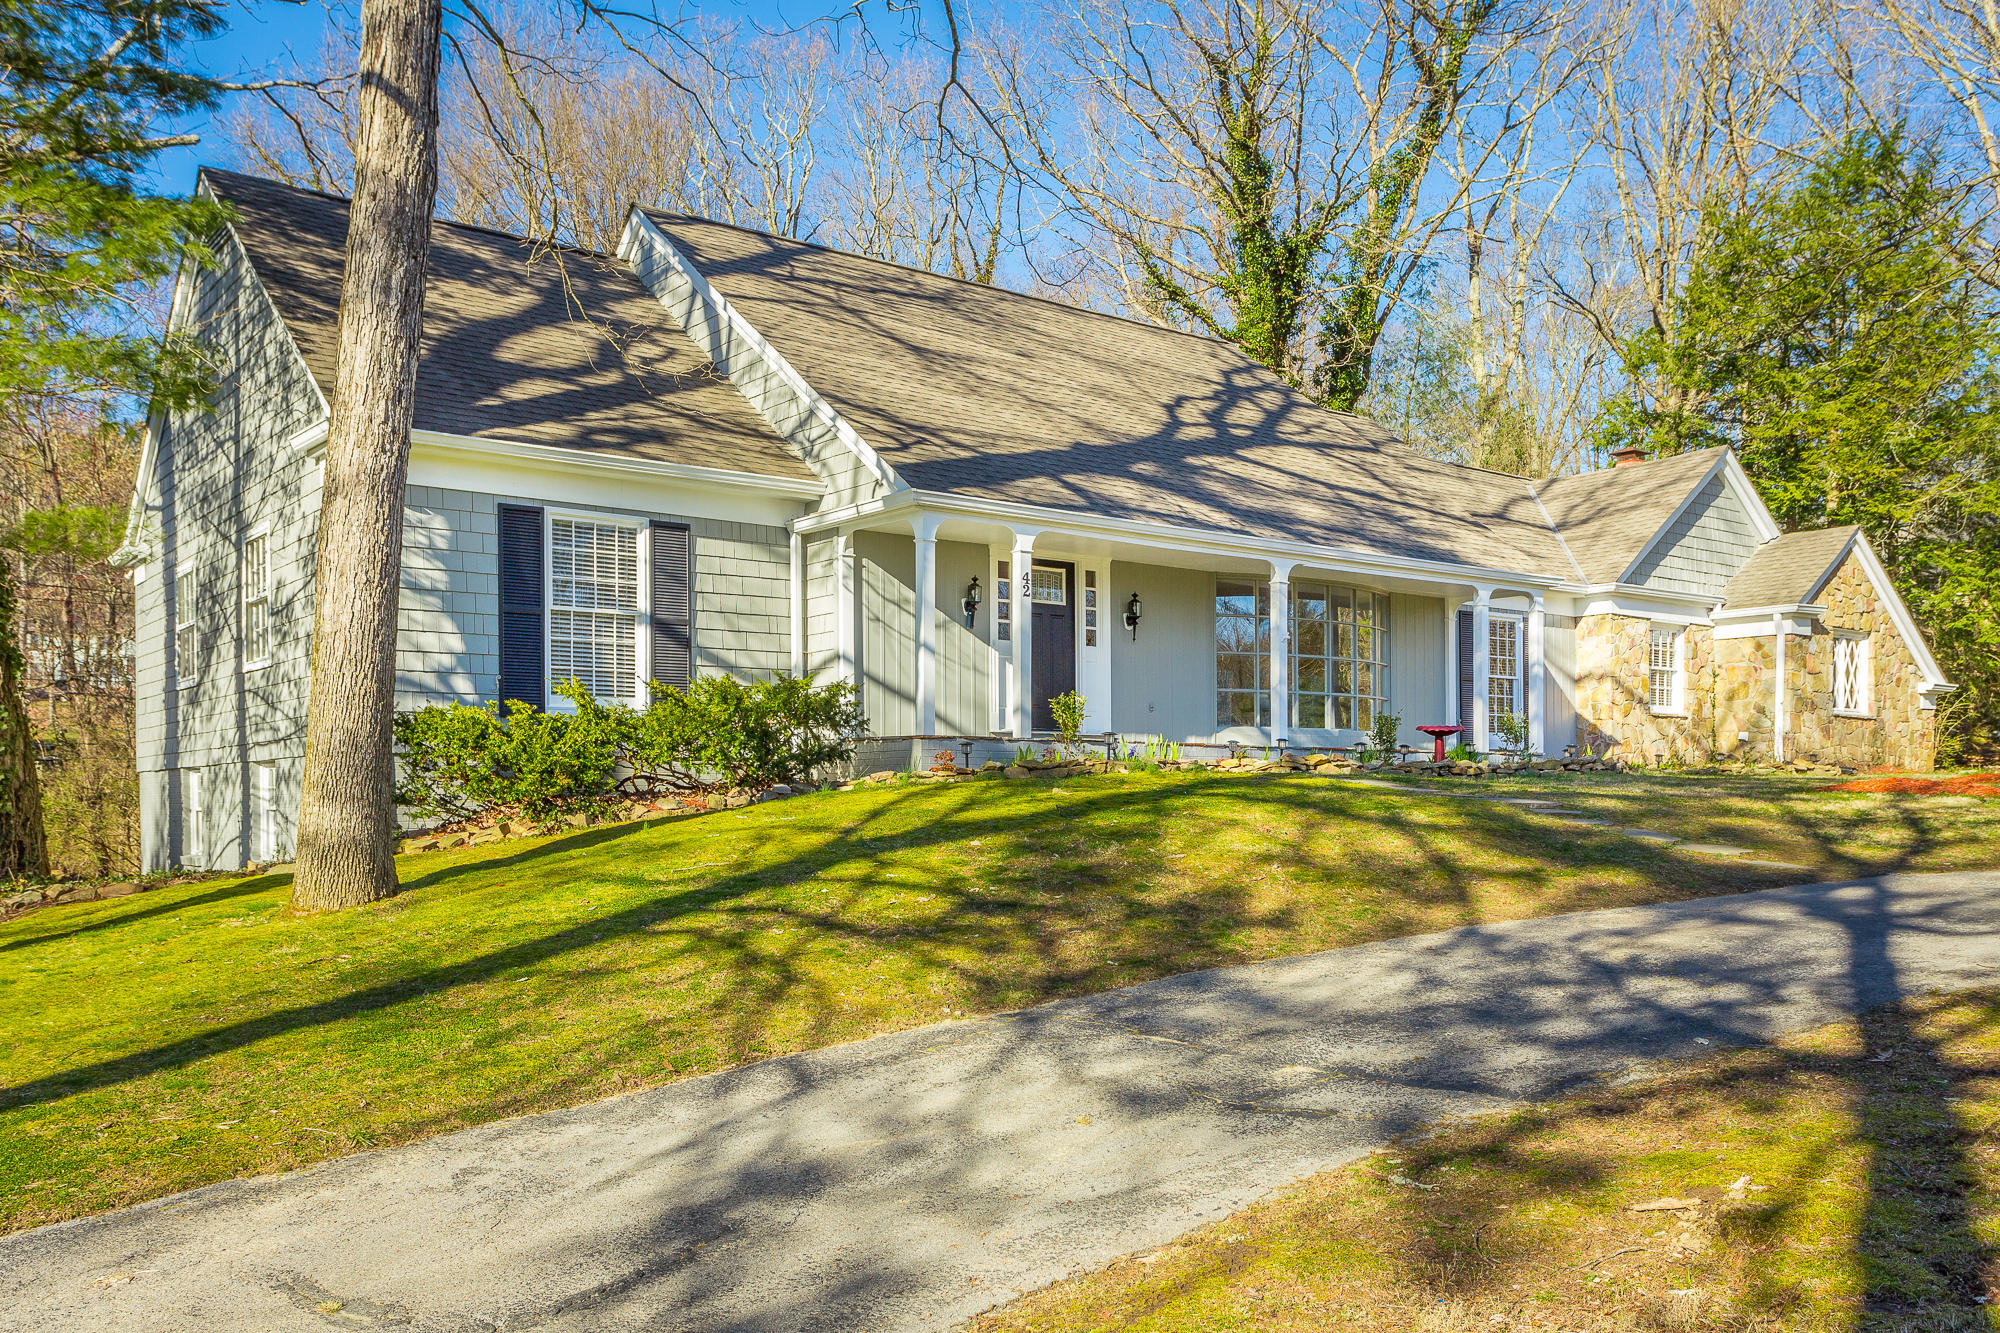 42 Carriage Hill Dr, Signal Mountain, TN 37377